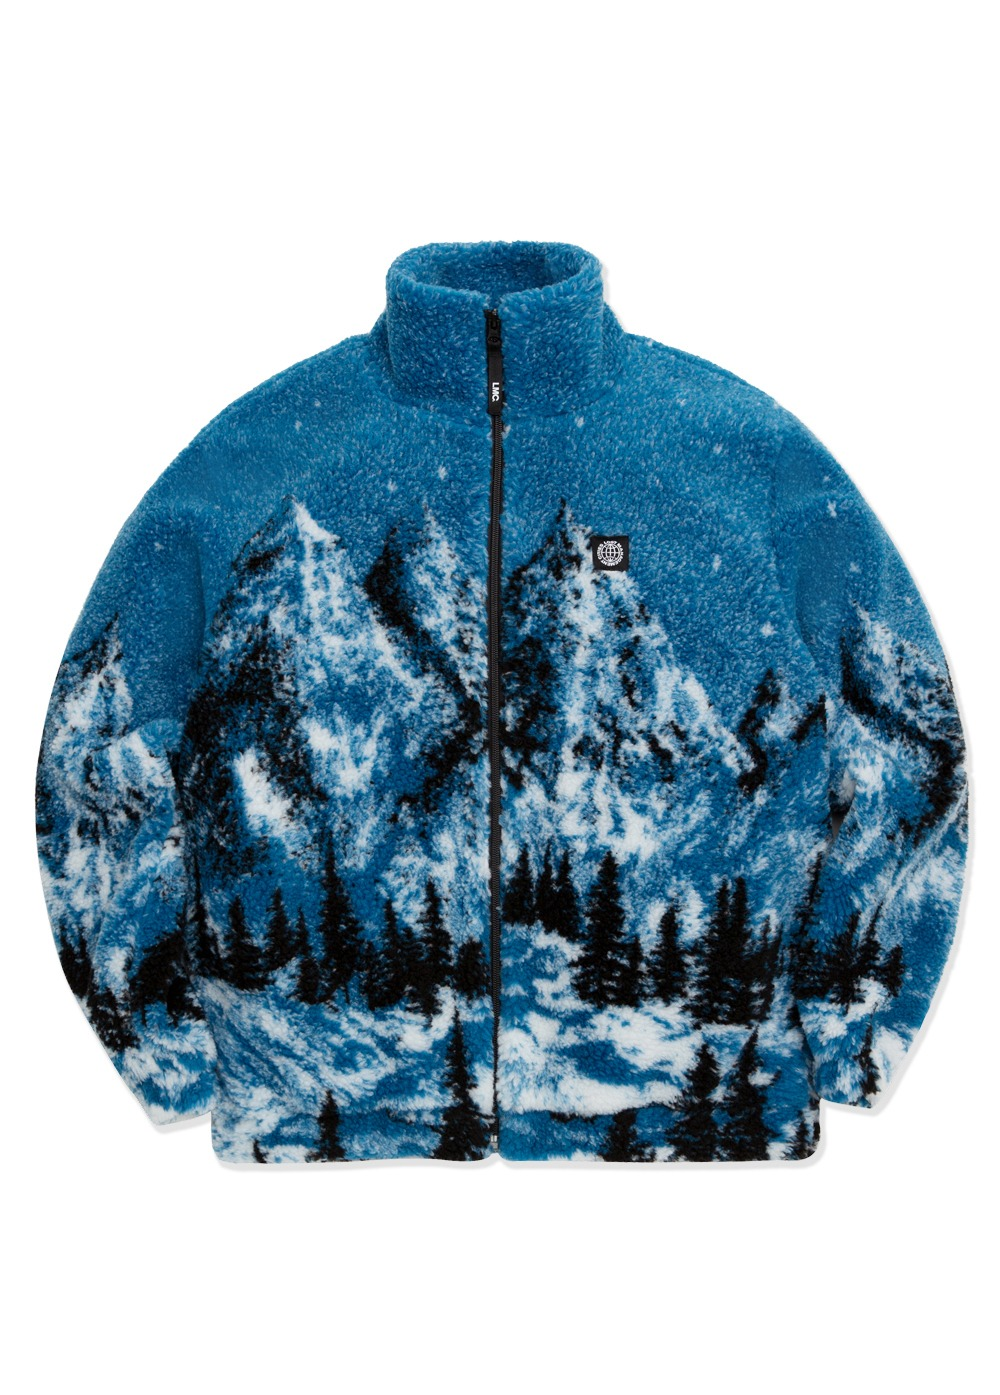 LMC SNOW VILLAGE FLEECE JACKET blue